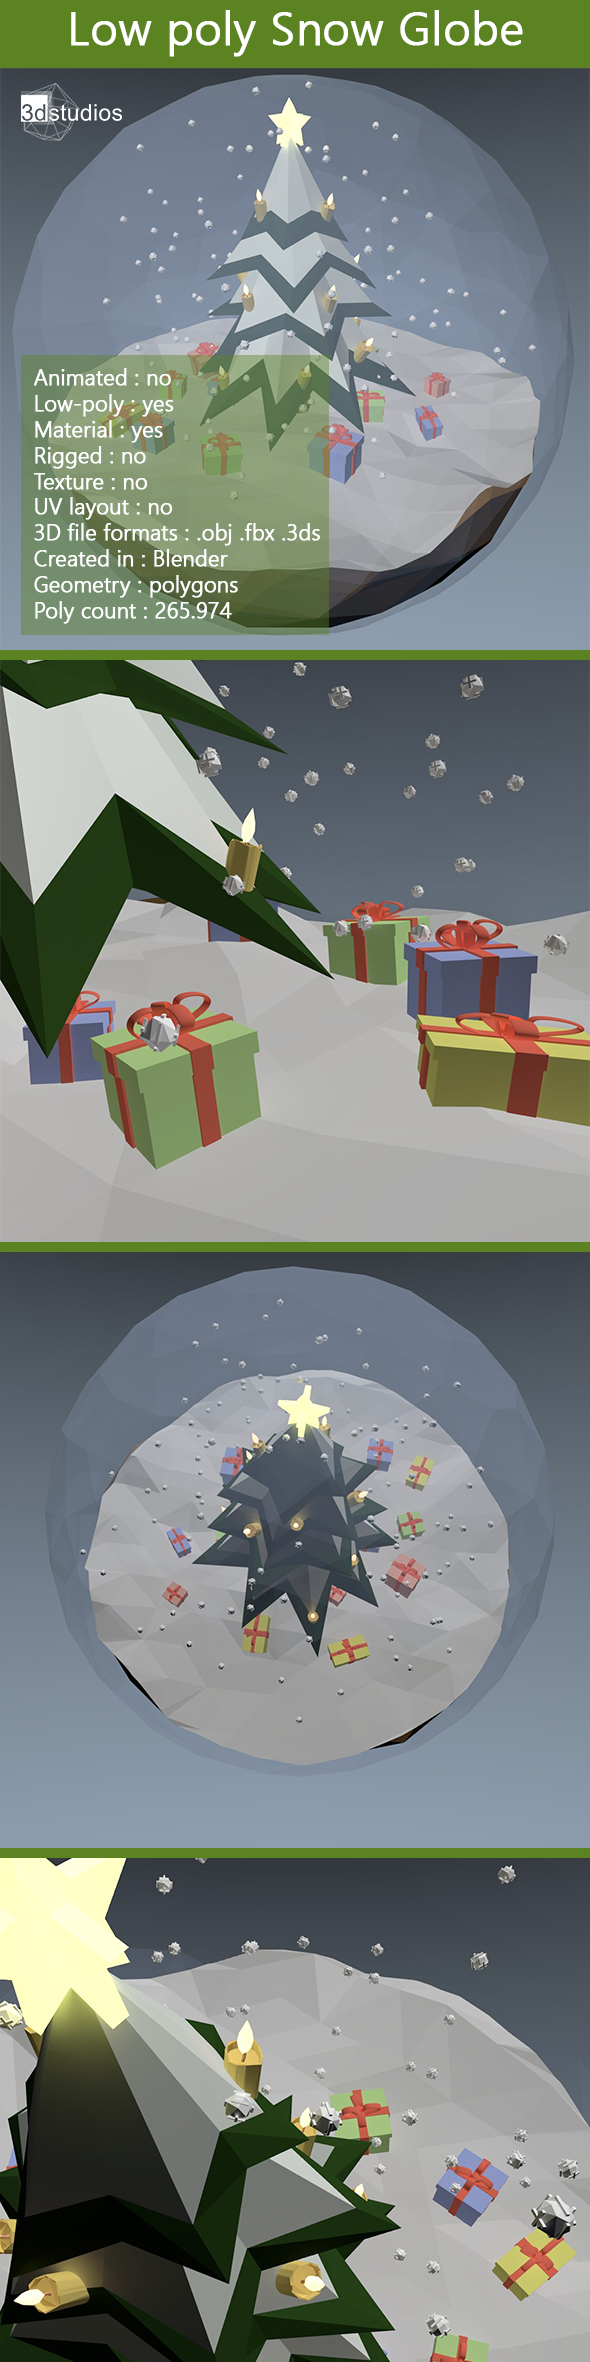 Low Poly Snow Globe - 3DOcean Item for Sale